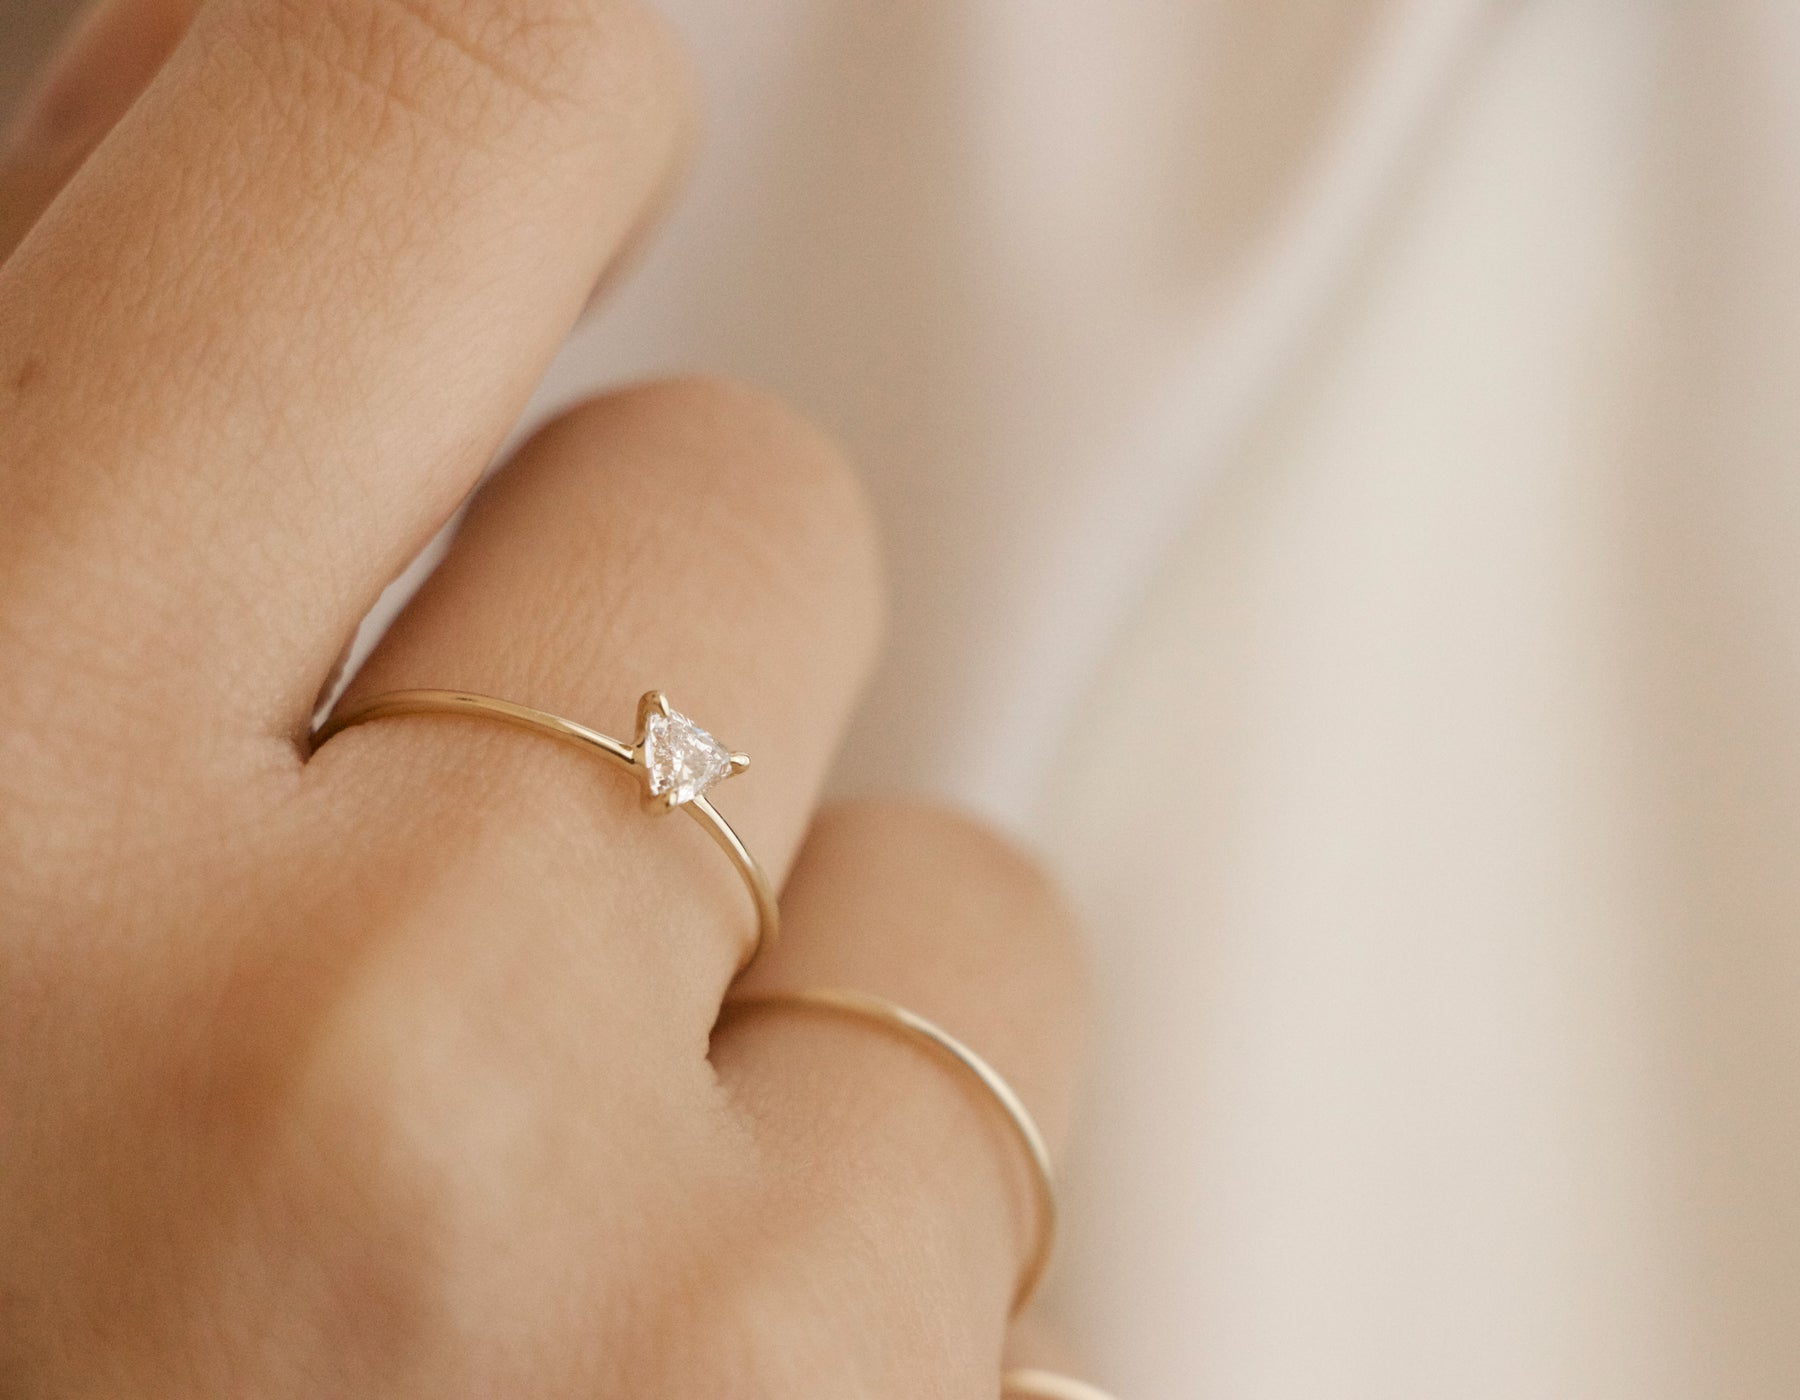 blogs news stackable bride rings for wedding er minimalist the simple engagement ring venetian